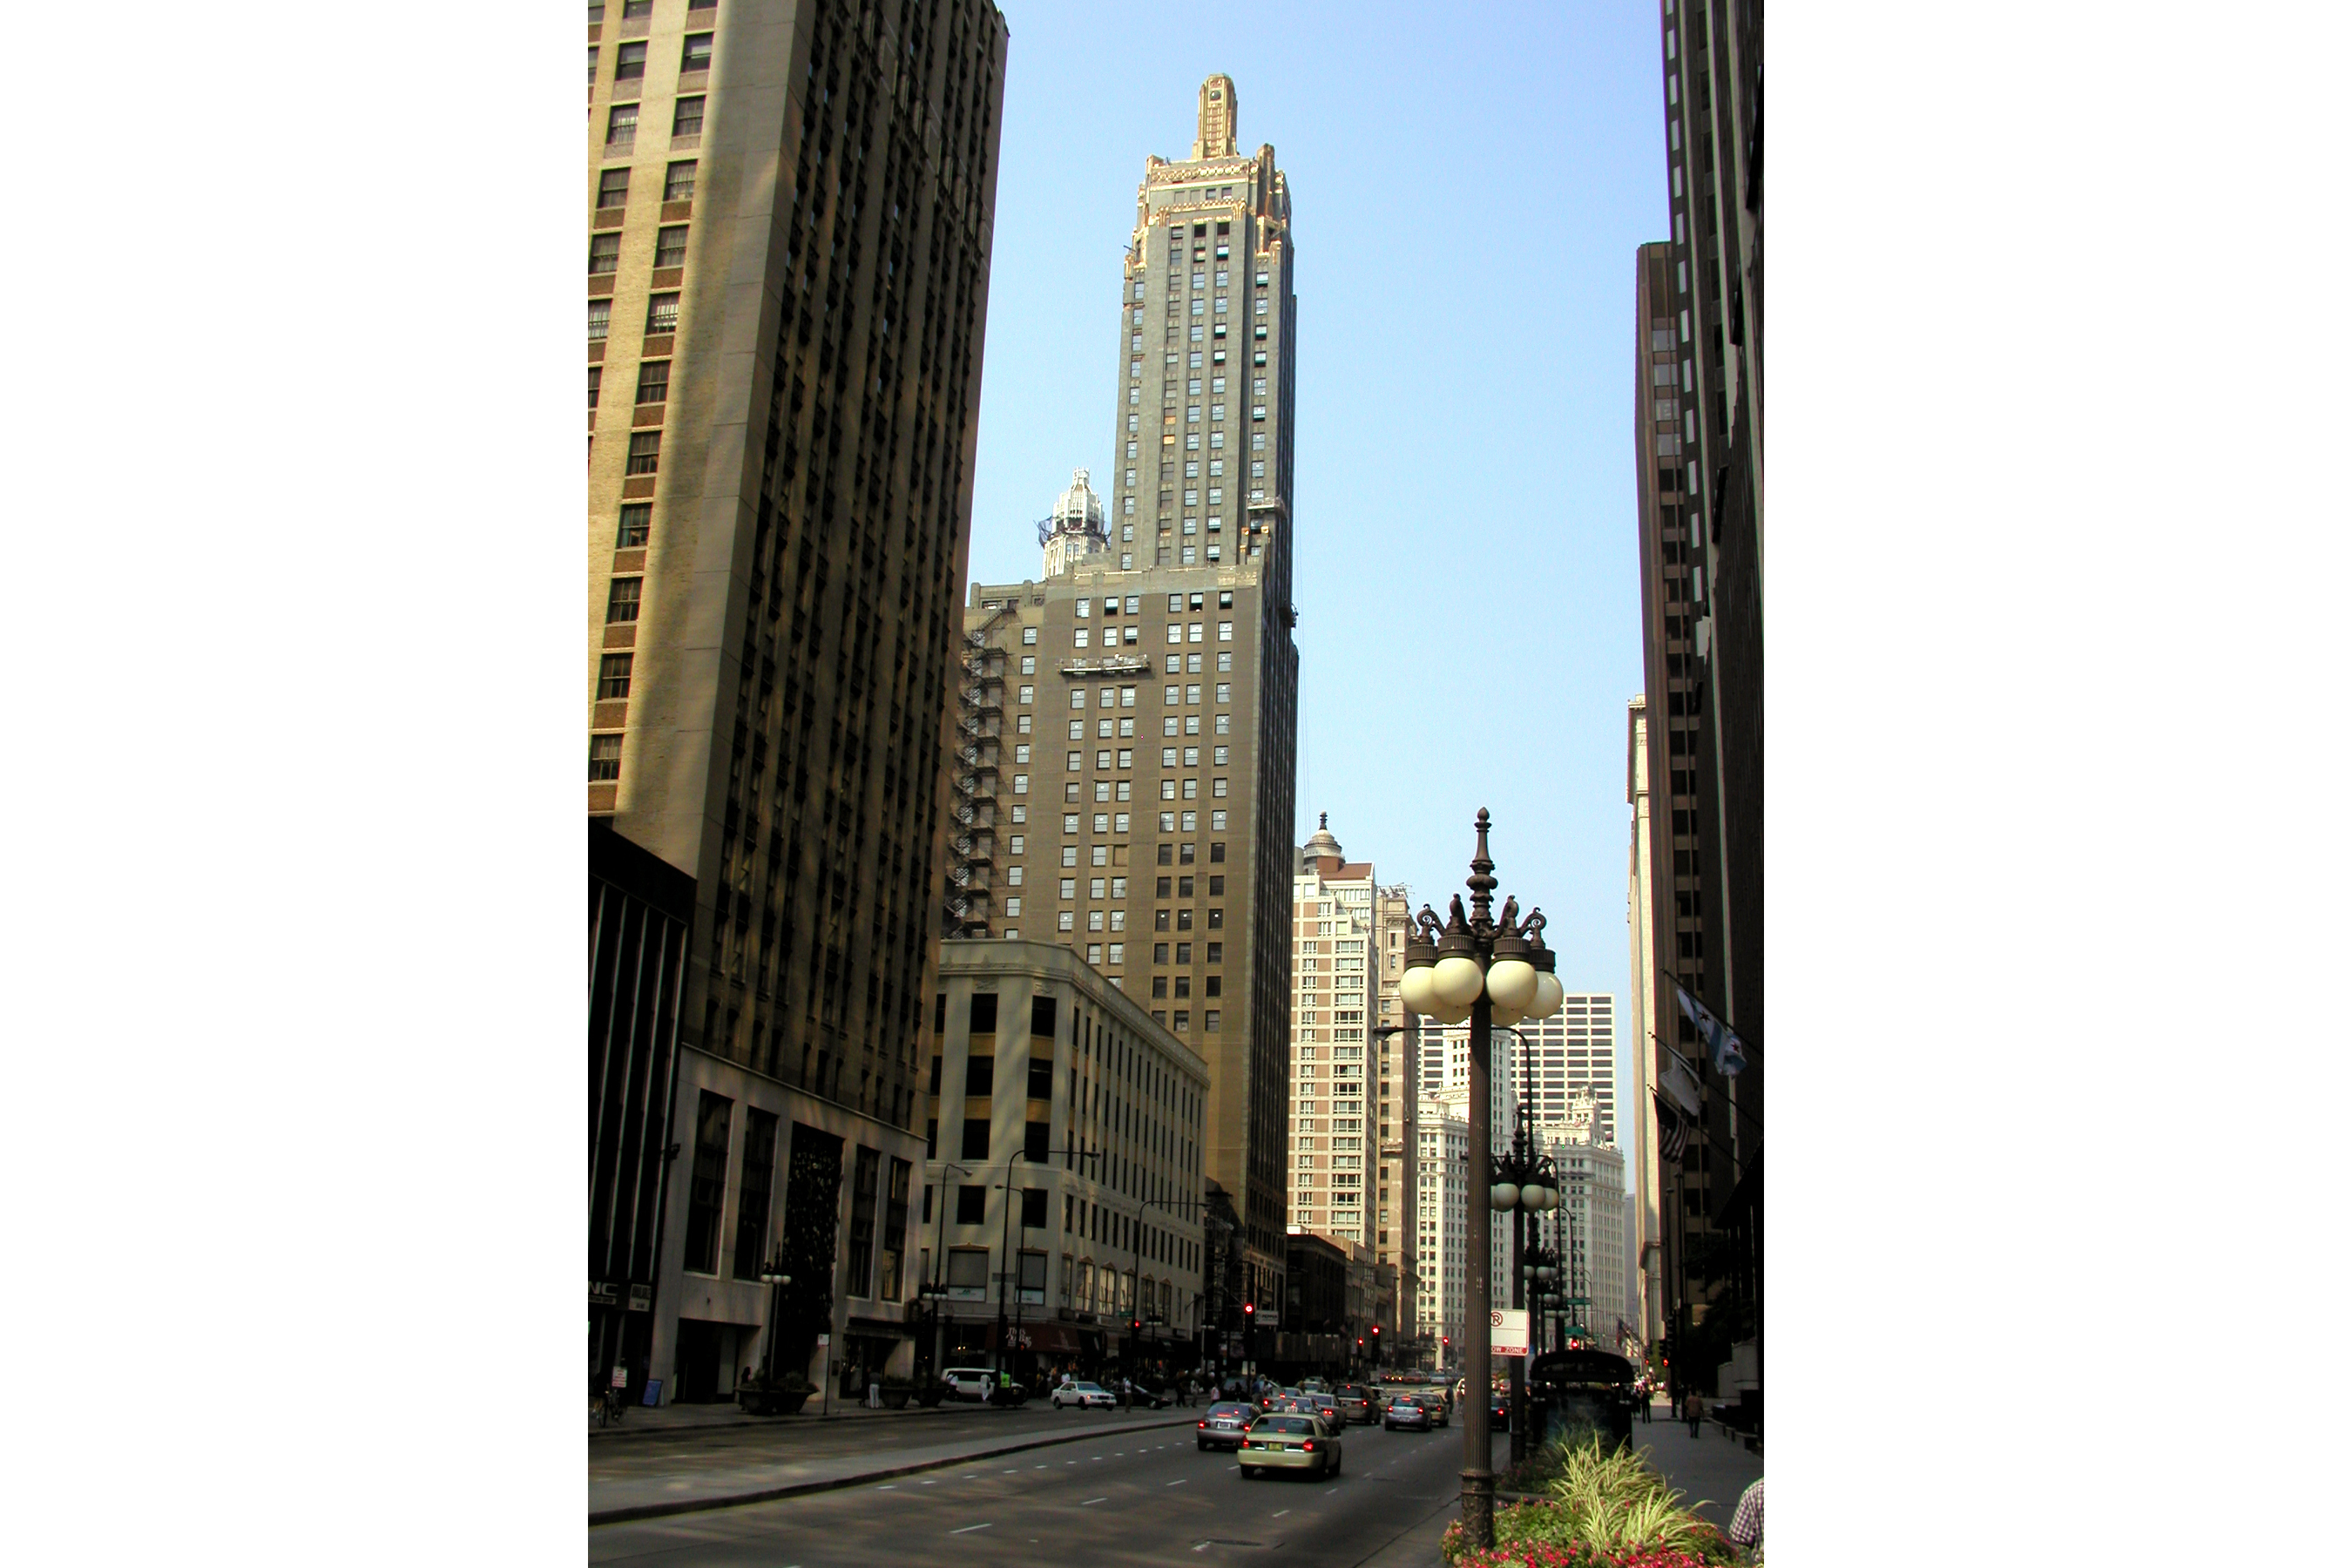 Carbide & Carbon Building (a.k.a. Hard Rock Hotel), 230 N Michigan Ave